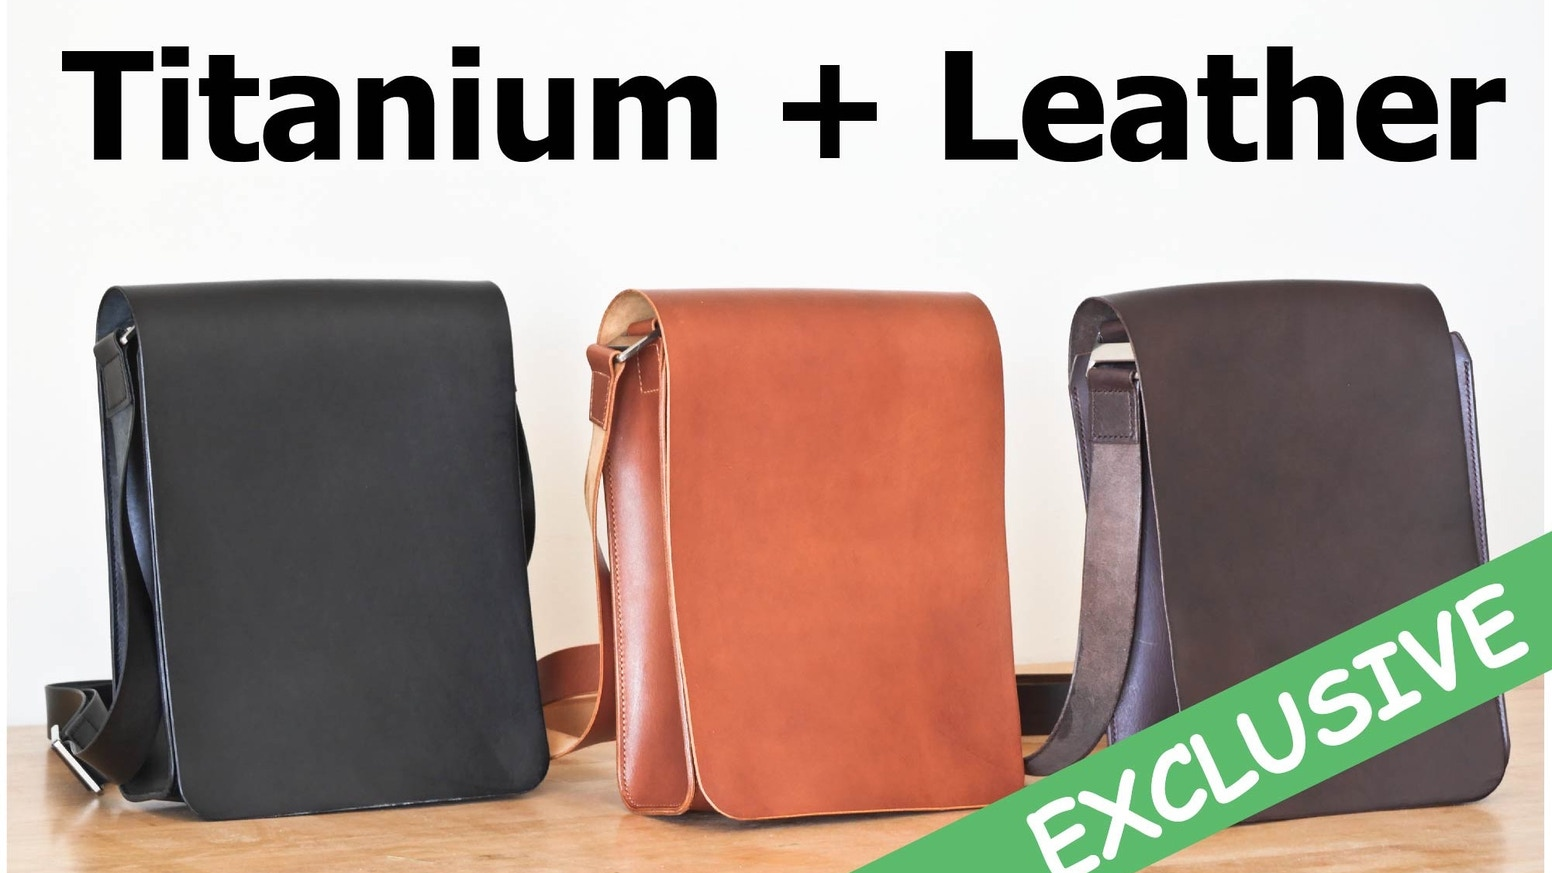 Handmade Leather Bag With Custom-Made Titanium Components For Your Everyday Carry - EDC .... Hand-stitched and Made To Last a lifetime!